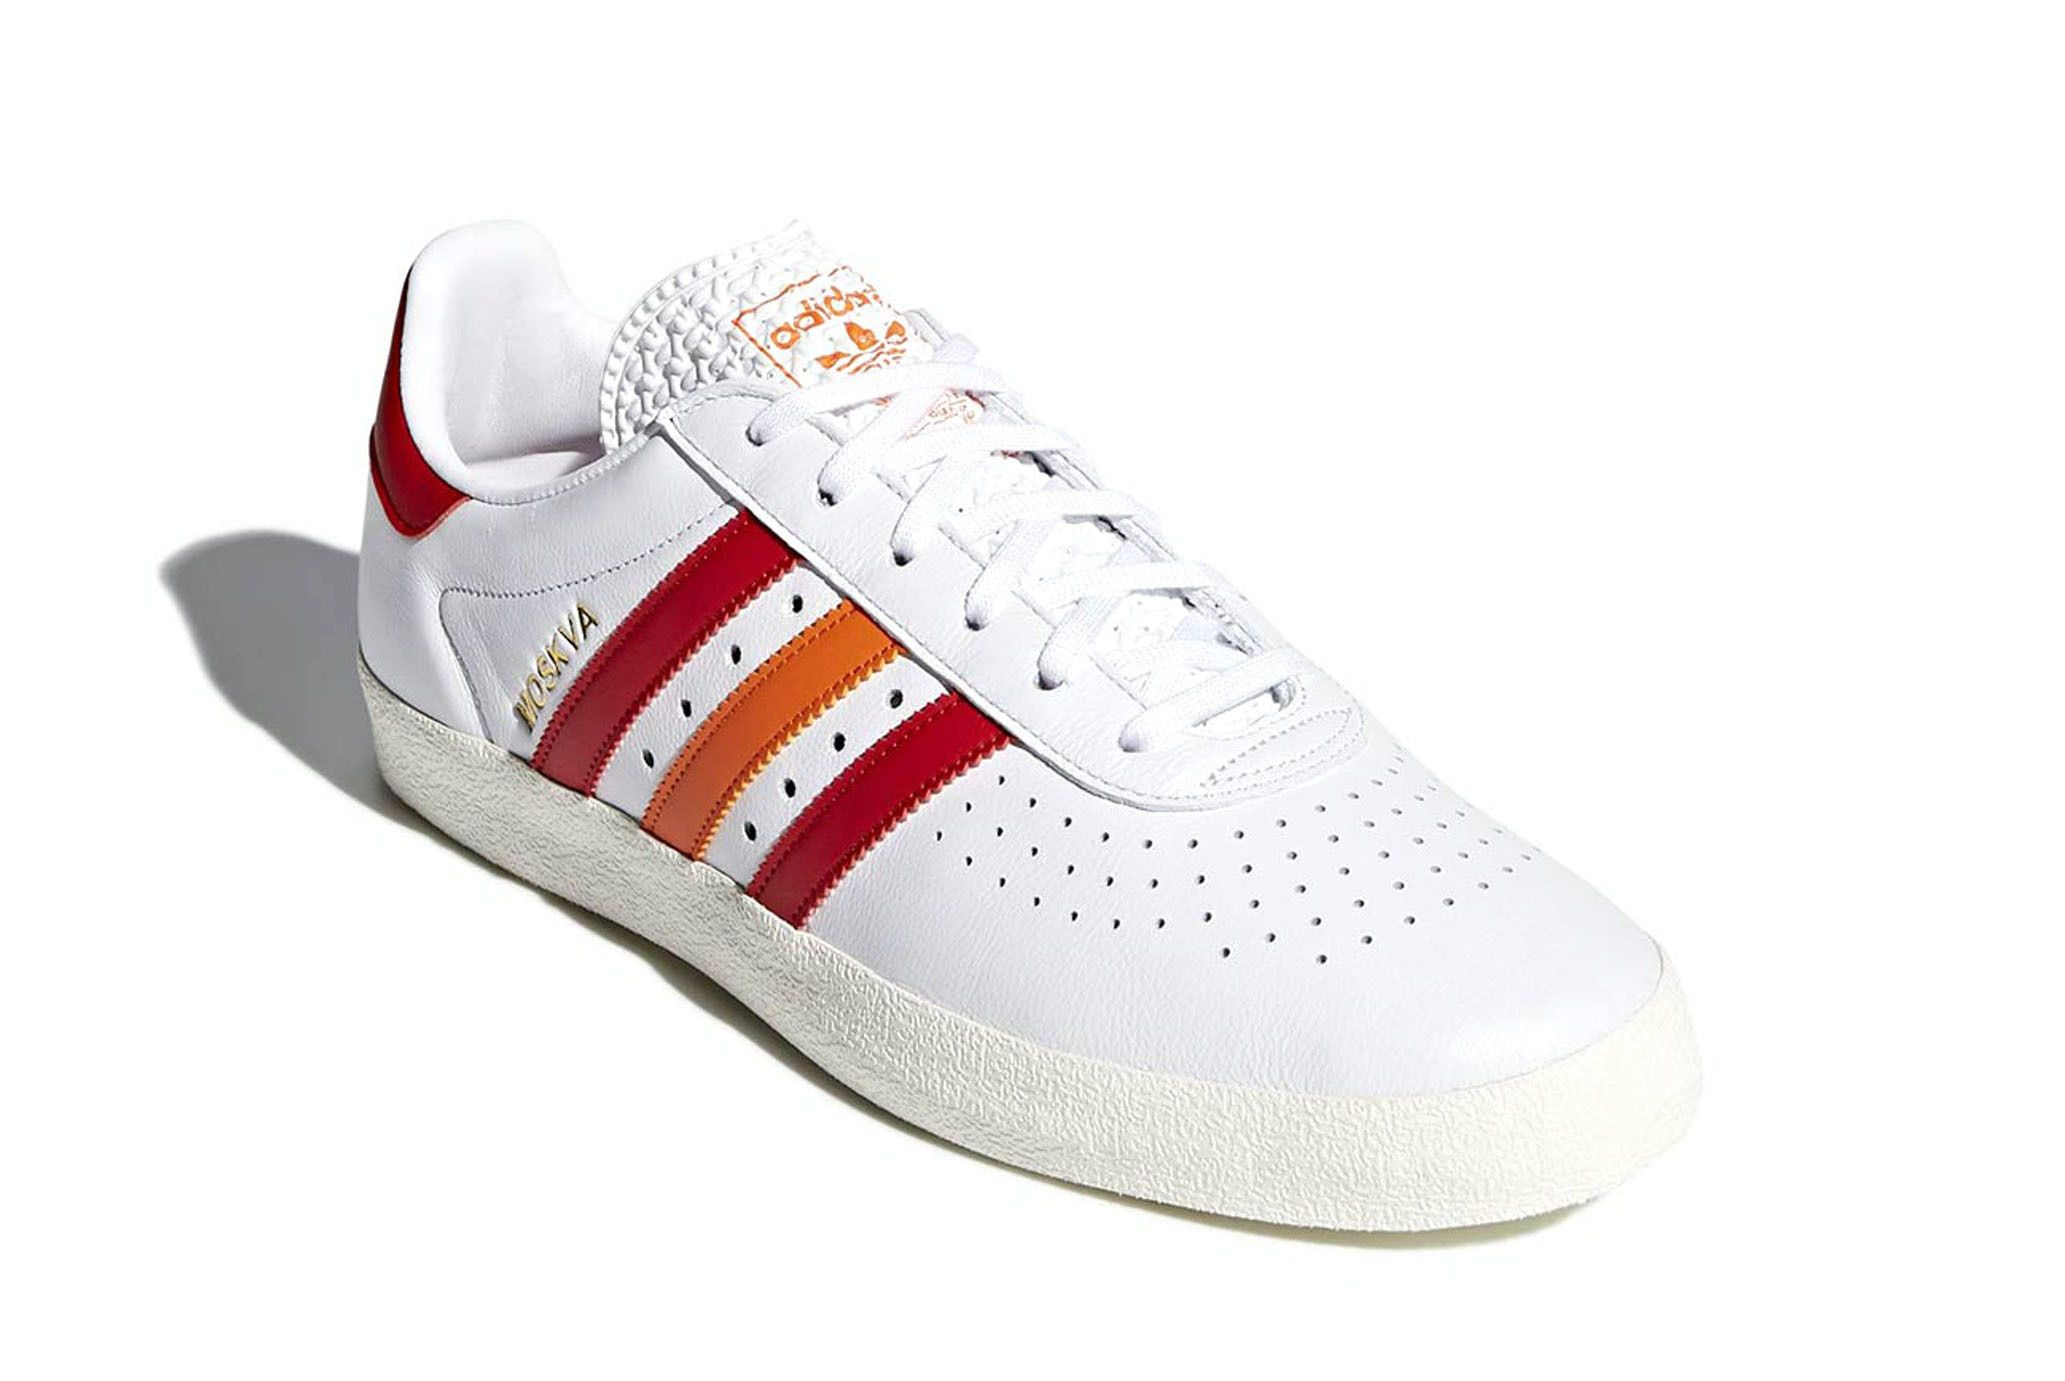 Adidas 350 Moscow Black White Leather Release 5 Sneaker Freaker